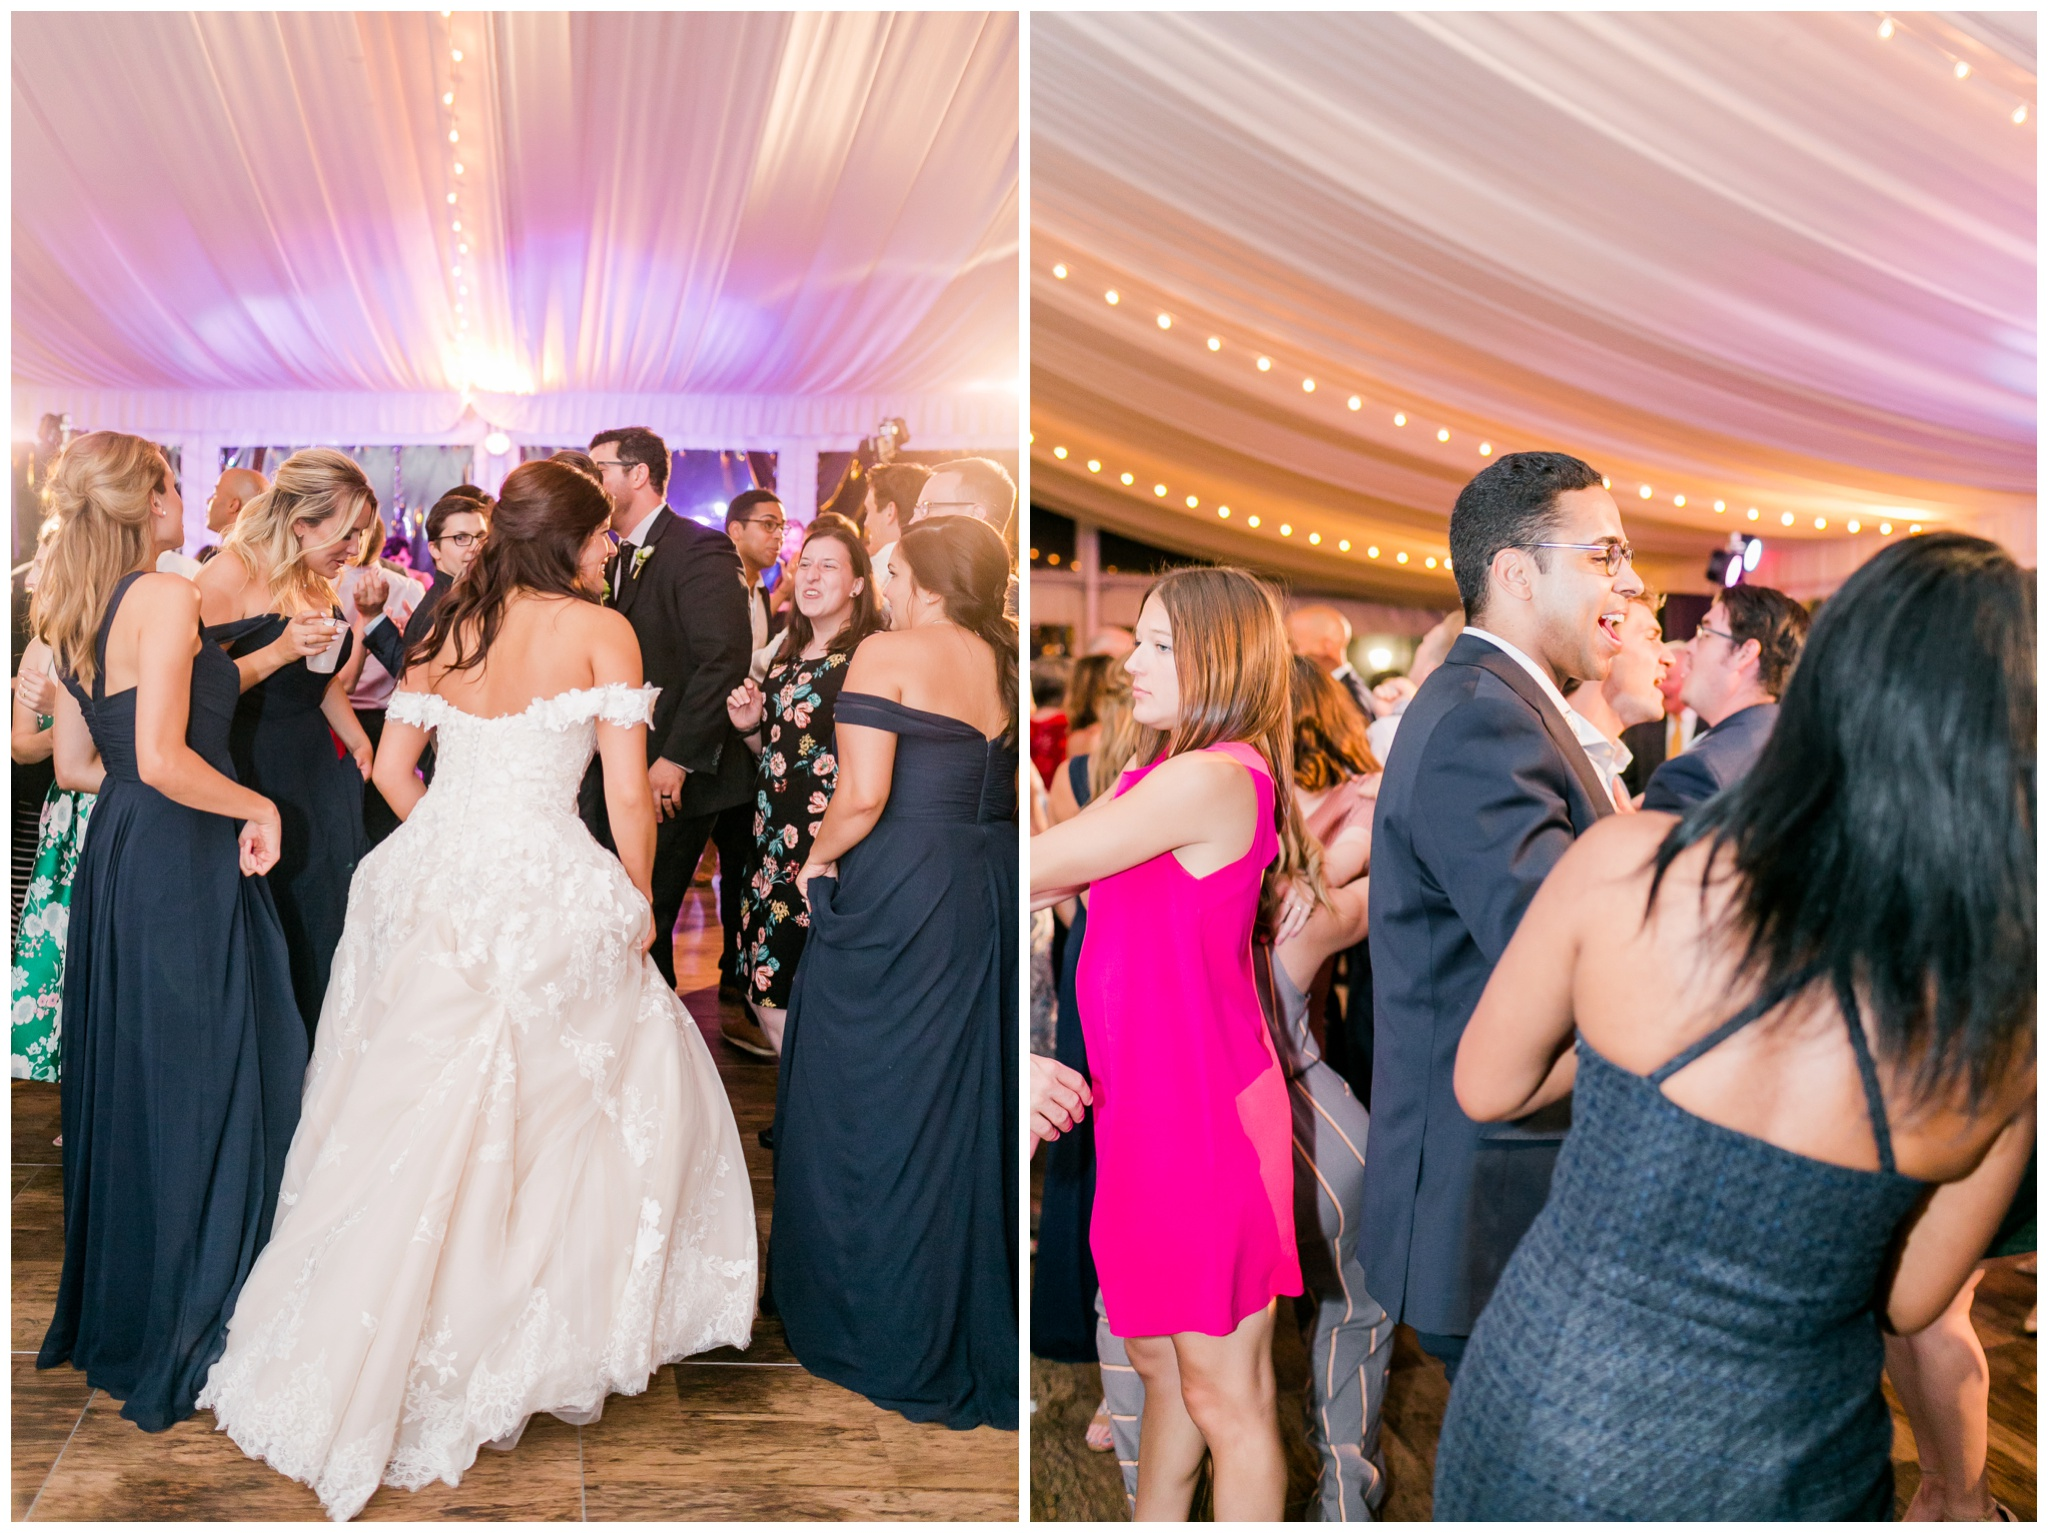 bishops_bay_country_club_wedding_middleton_wisconsin_caynay_photo_4751.jpg